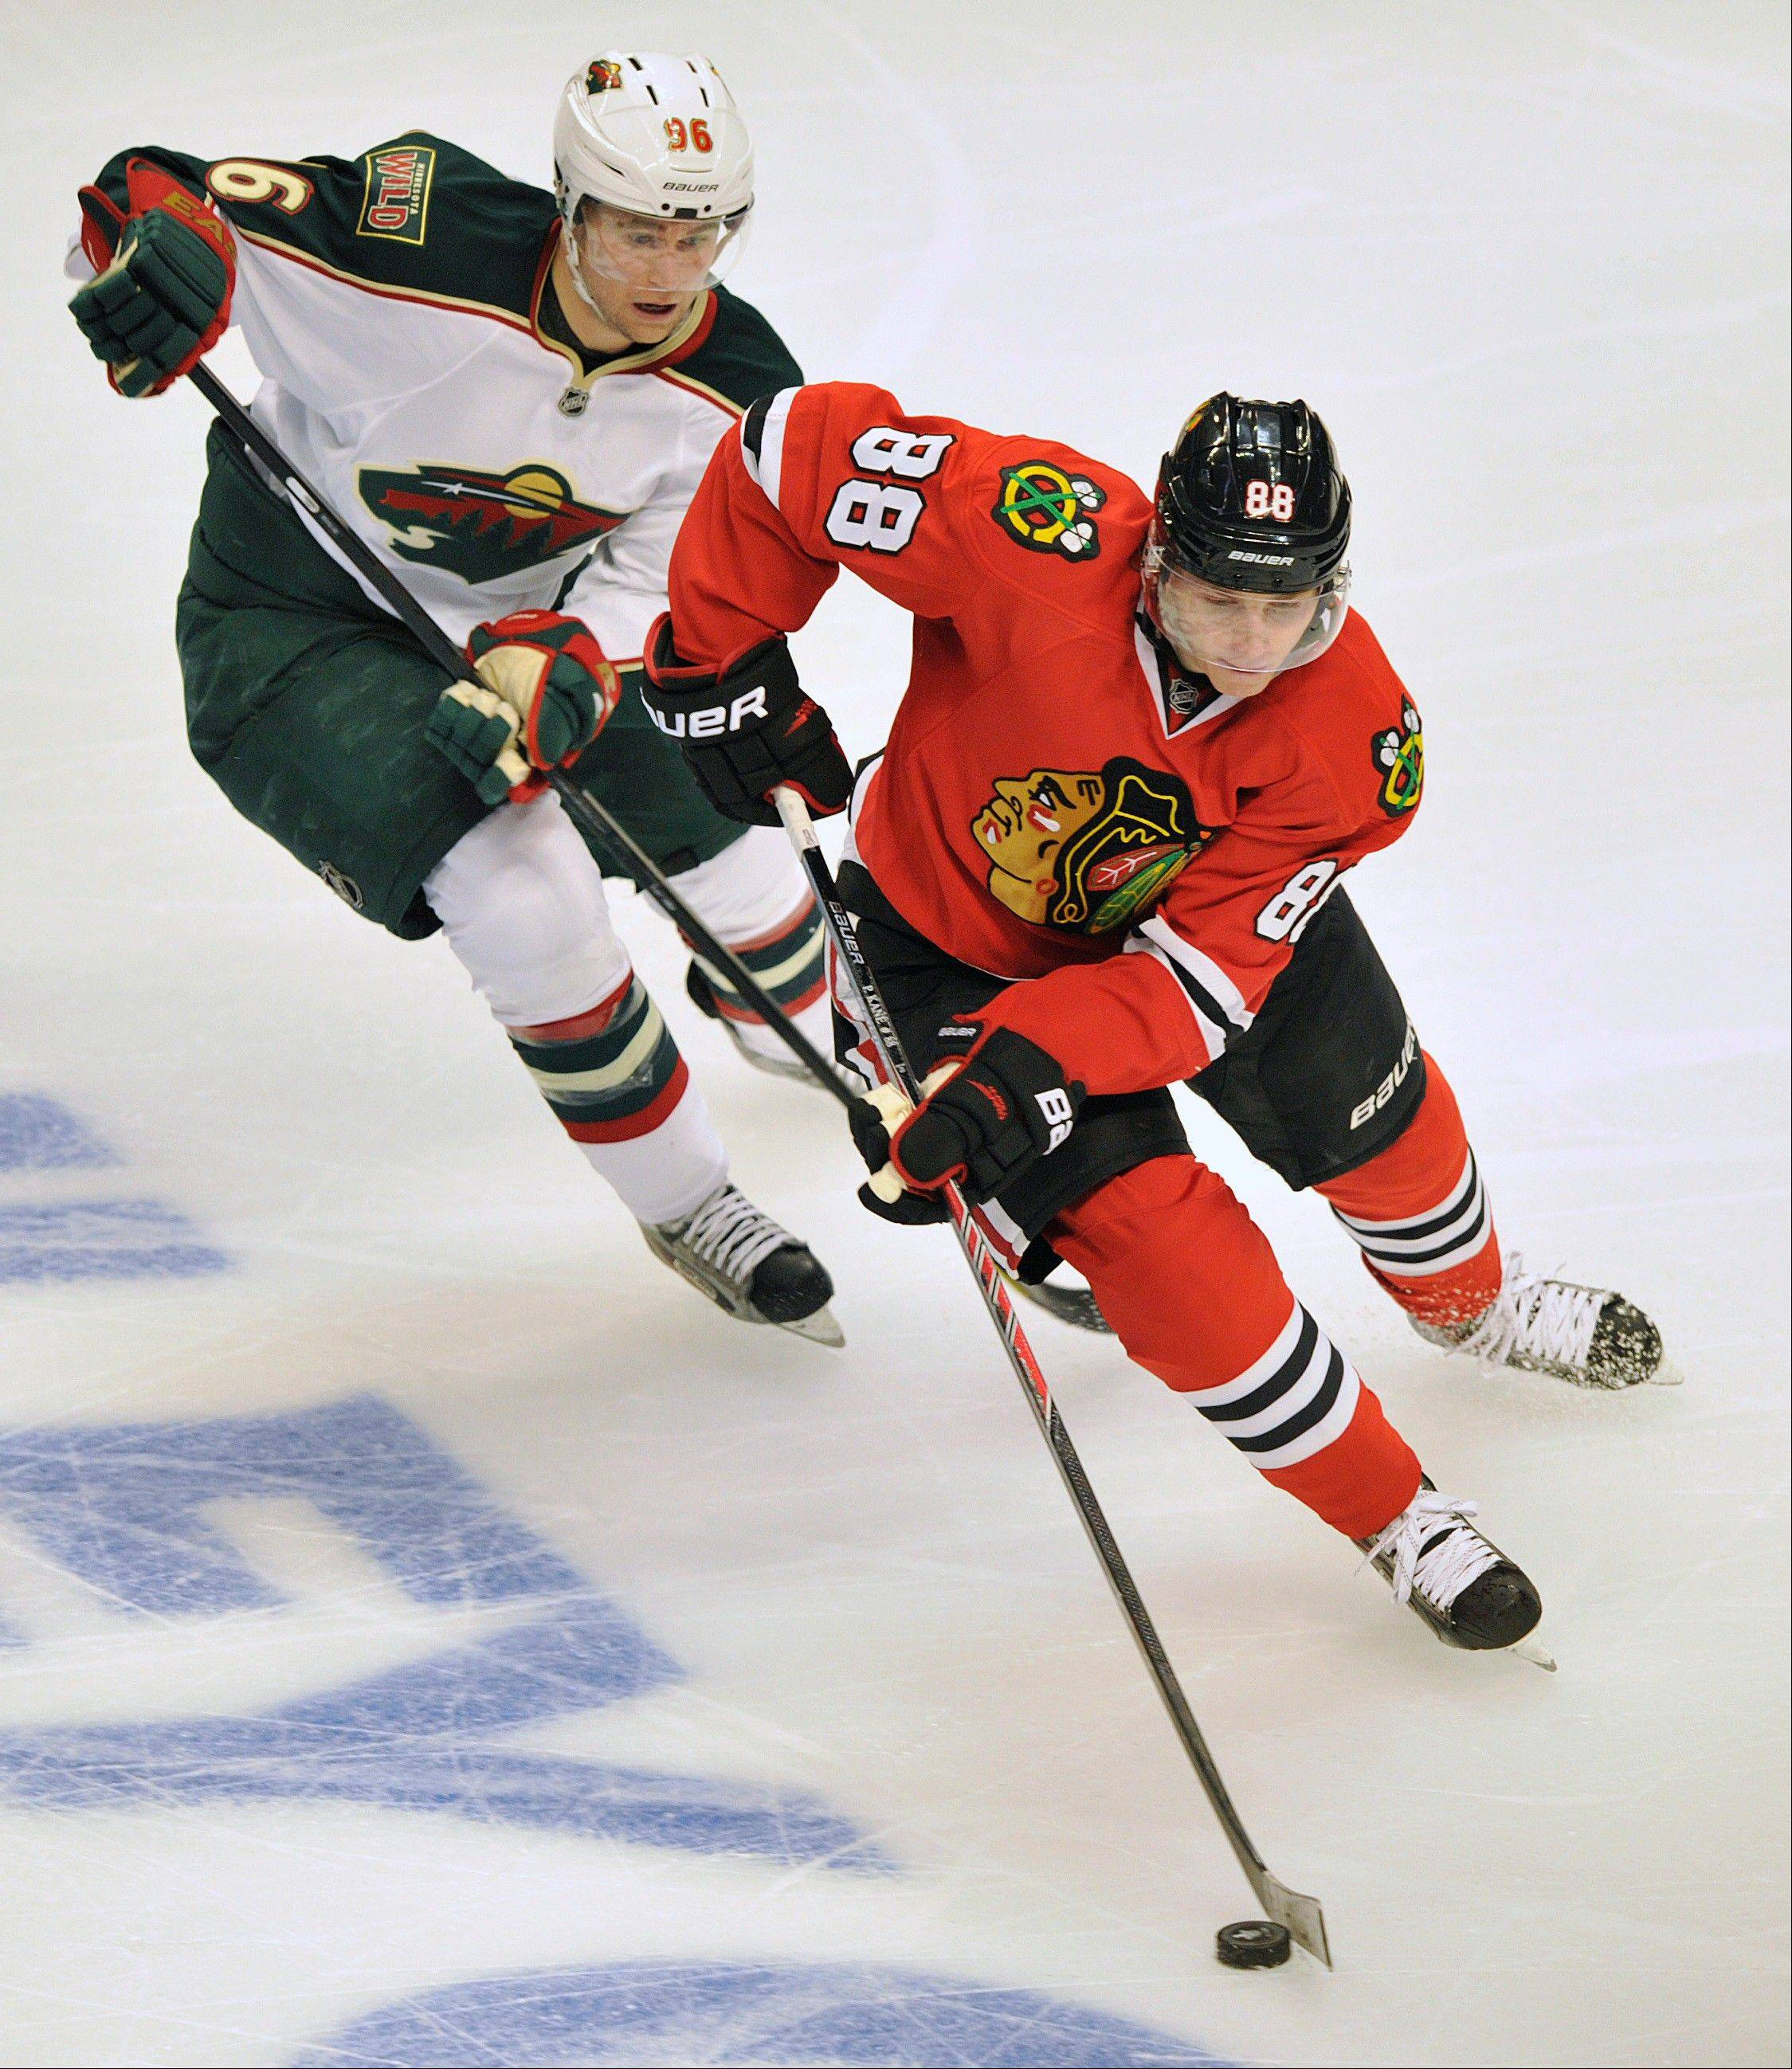 Minnesota Wild's Pierre-Marc Bouchard, left, and Chicago Blackhawks' Patrick Kane (88) race for the puck during the second period of Game 1 of an NHL hockey Stanley Cup playoff series Tuesday, April 30, 2013, in Chicago.